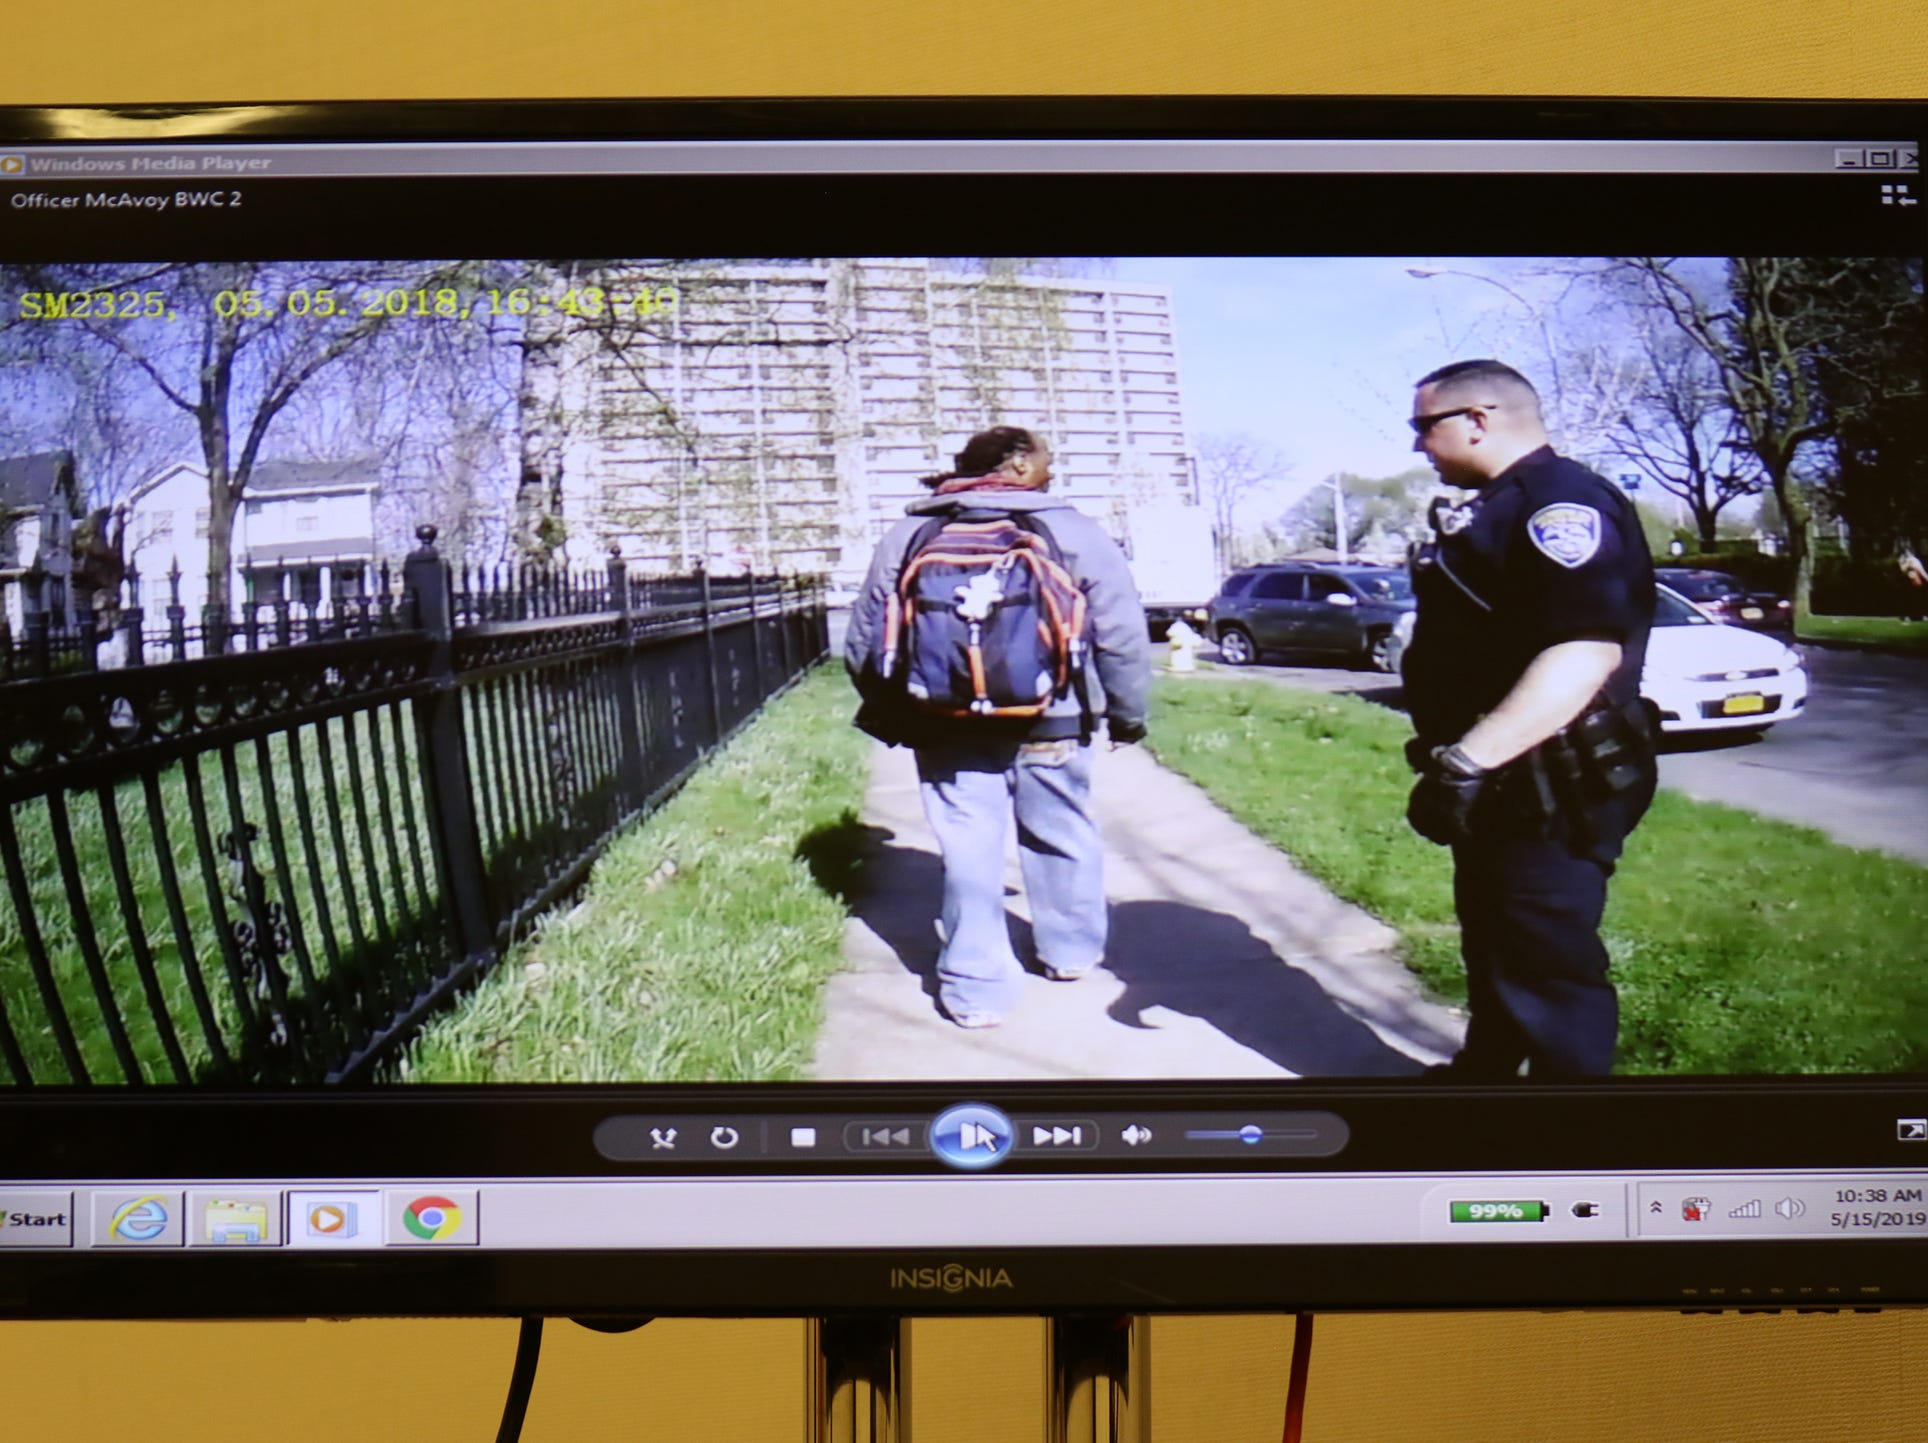 Police body camera video showing Christopher Pate walking by Rochester Police Officer Michael Sippel.